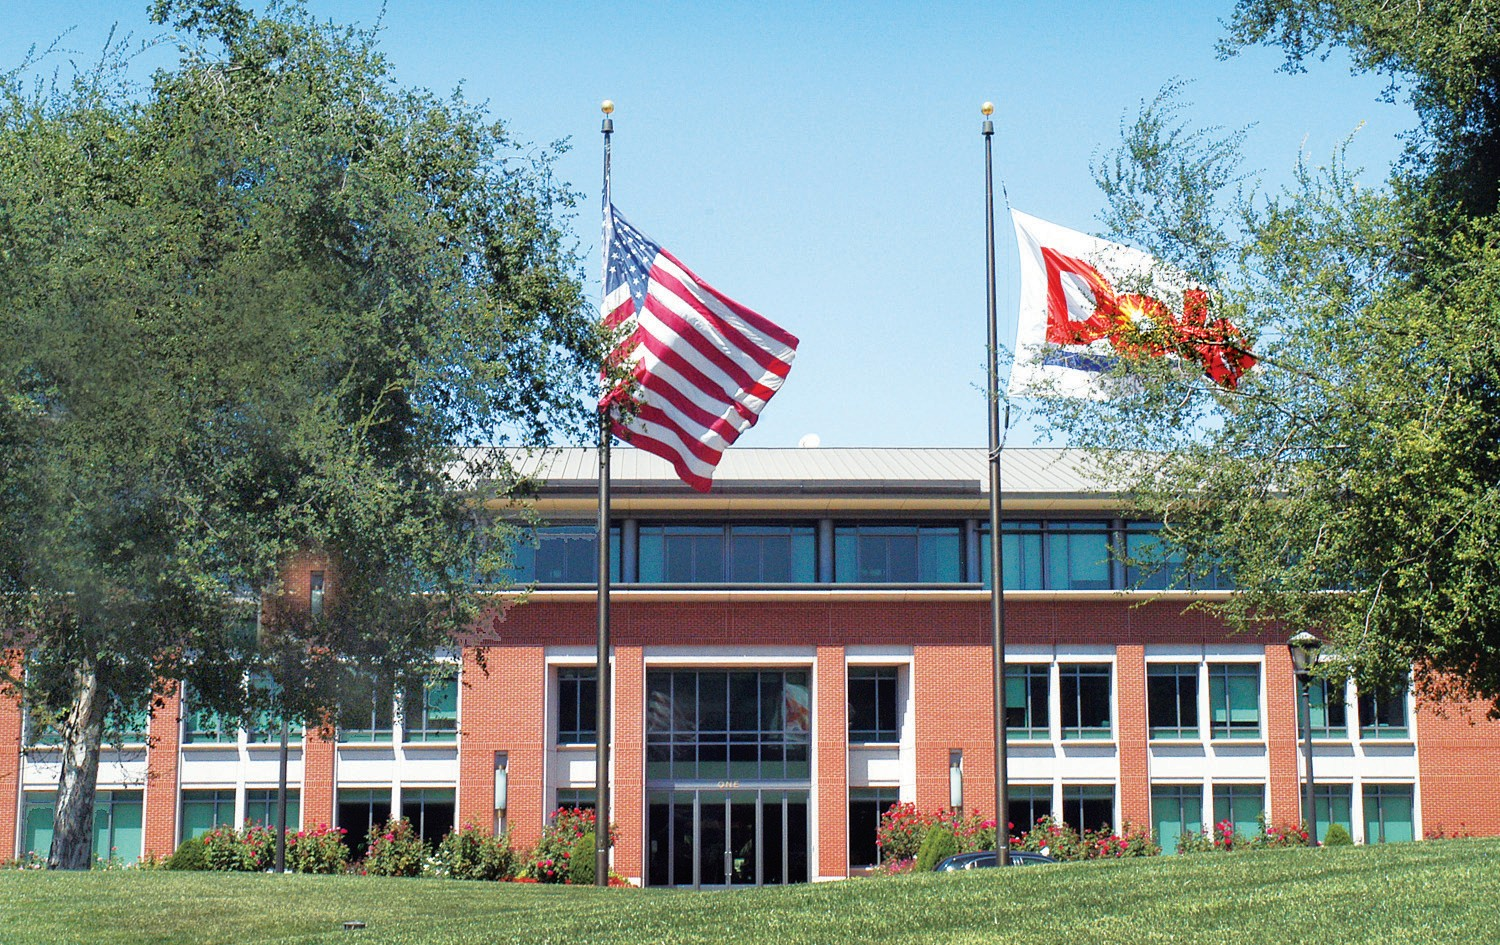 HALF-MAST—A Belgian company decided not to purchase the debtladen Dole Food Company, whose headquarters are shown here. Acornfile photo